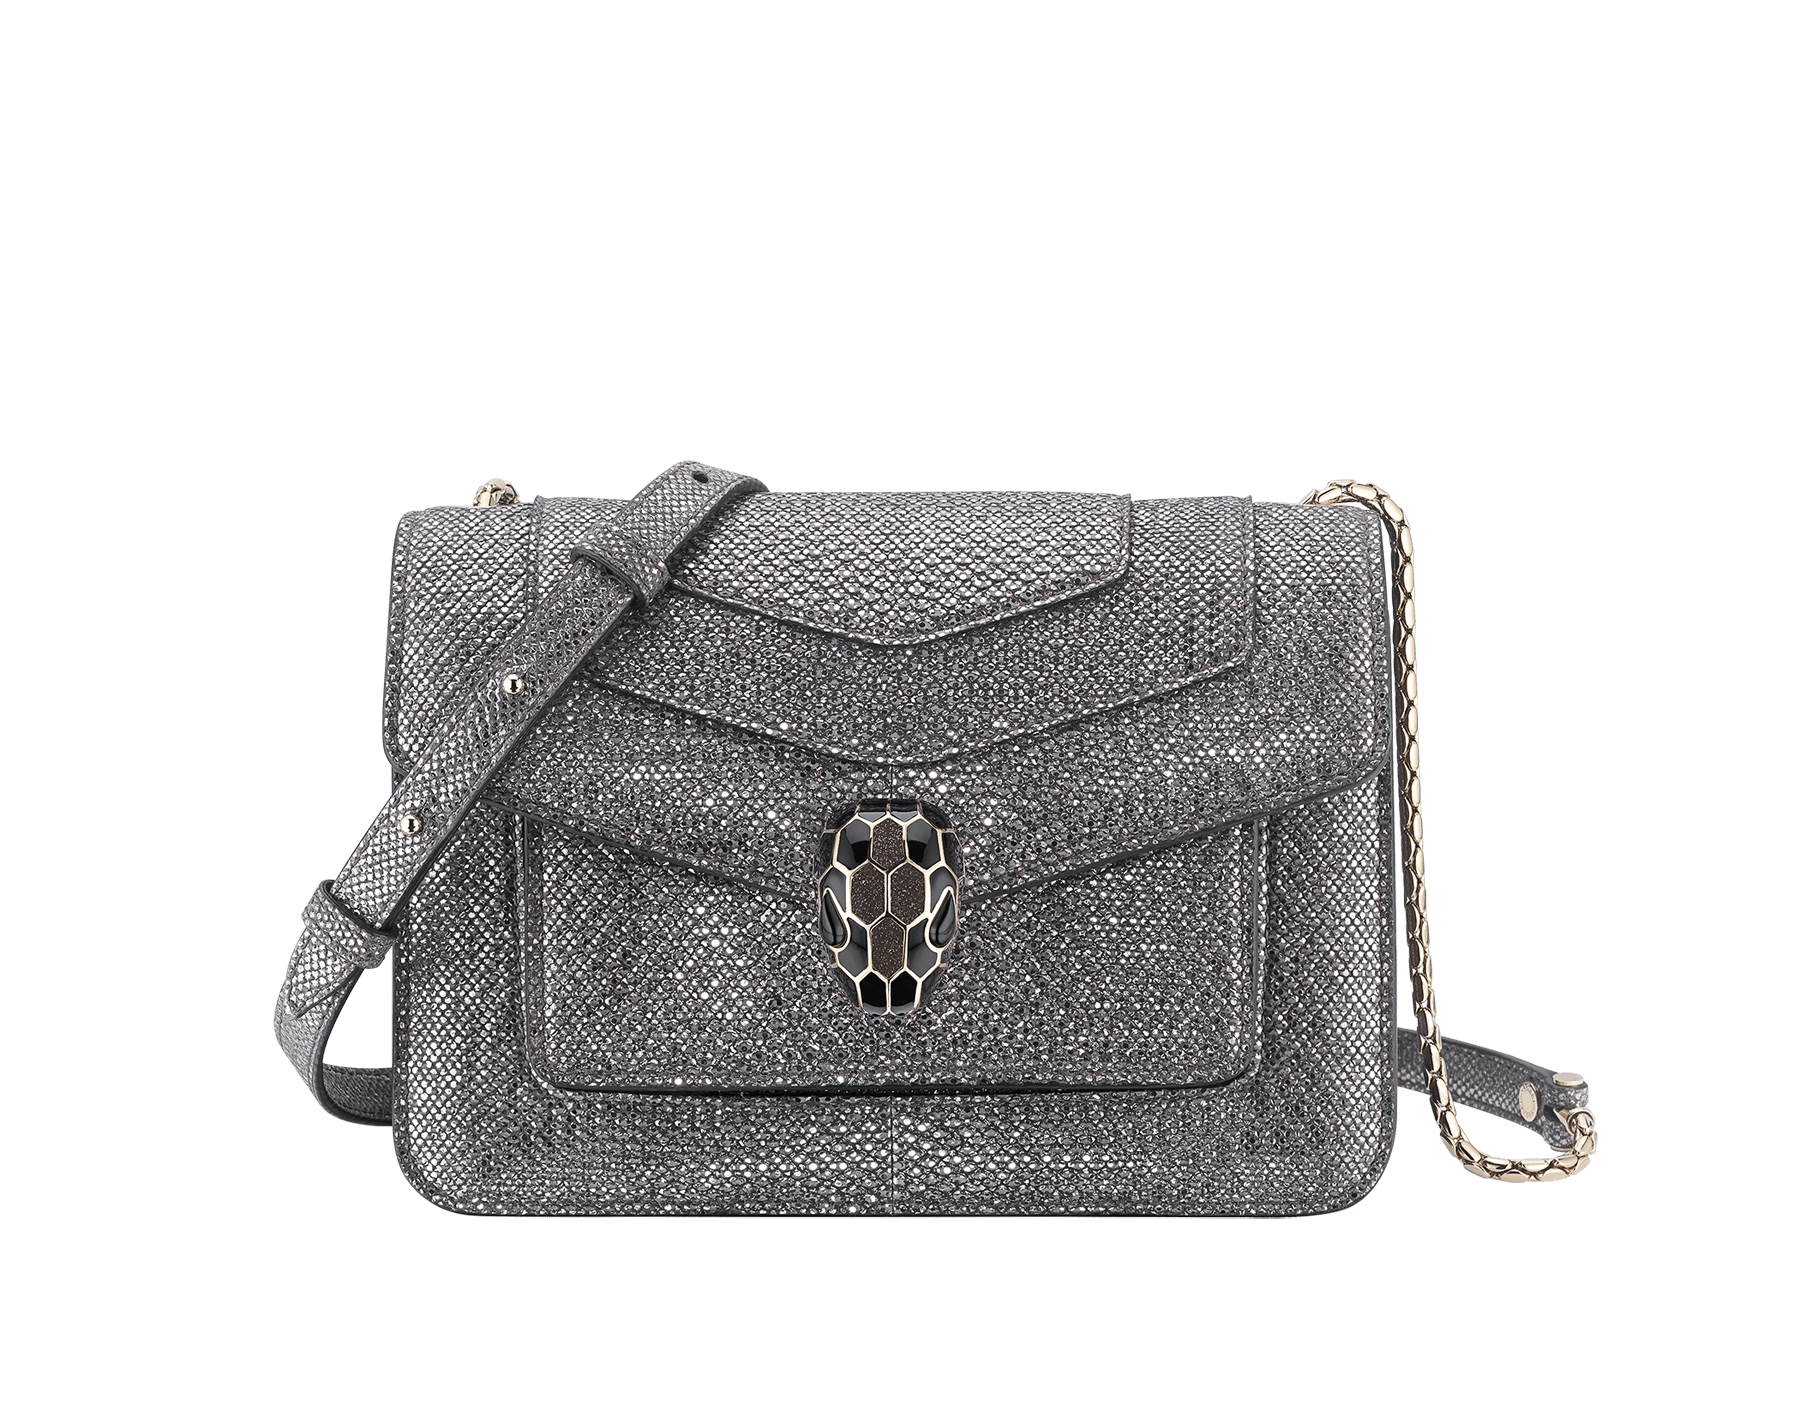 """Serpenti Forever"" crossbody bag in charcoal diamond metallic karung skin. Iconic snakehead closure in light gold plated brass enriched with black and glitter hawk's eye enamel and black onyx eyes. 1082-MK image 1"